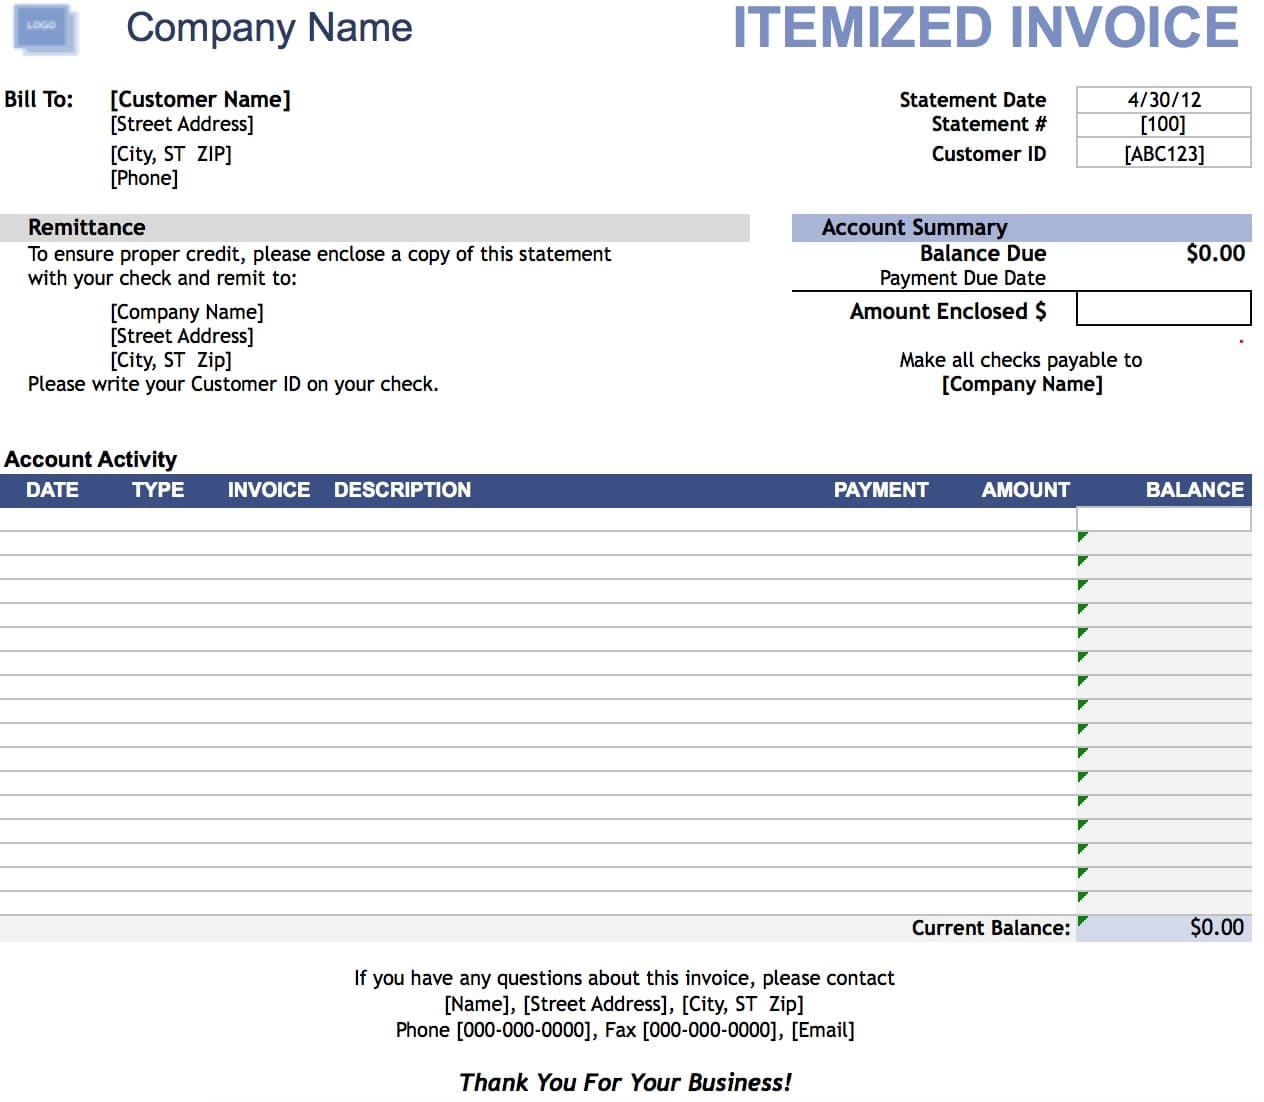 Custom Invoice Book Pdf Itemized Invoice Template  Invoice Example Write An Invoice Pdf with Comercial Invoice Template Excel Free Download Sponsorship Invoice Template Excel